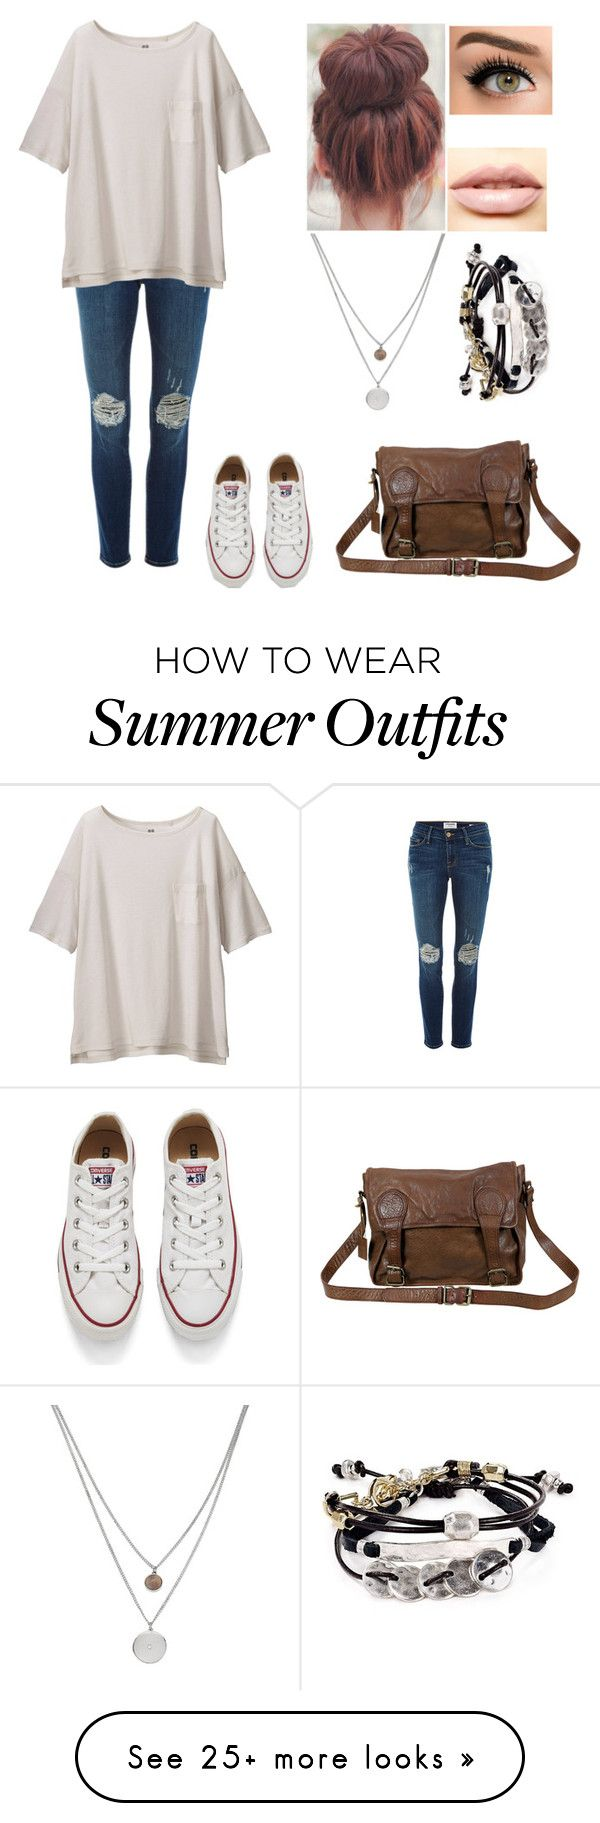 """lazy day outfit."" by kerryhere on Polyvore featuring Frame Denim, Uniqlo, Converse, LASplash, Kenneth Cole, Robert Lee Morris, VIPARO, women's clothing, women's fashion and women"